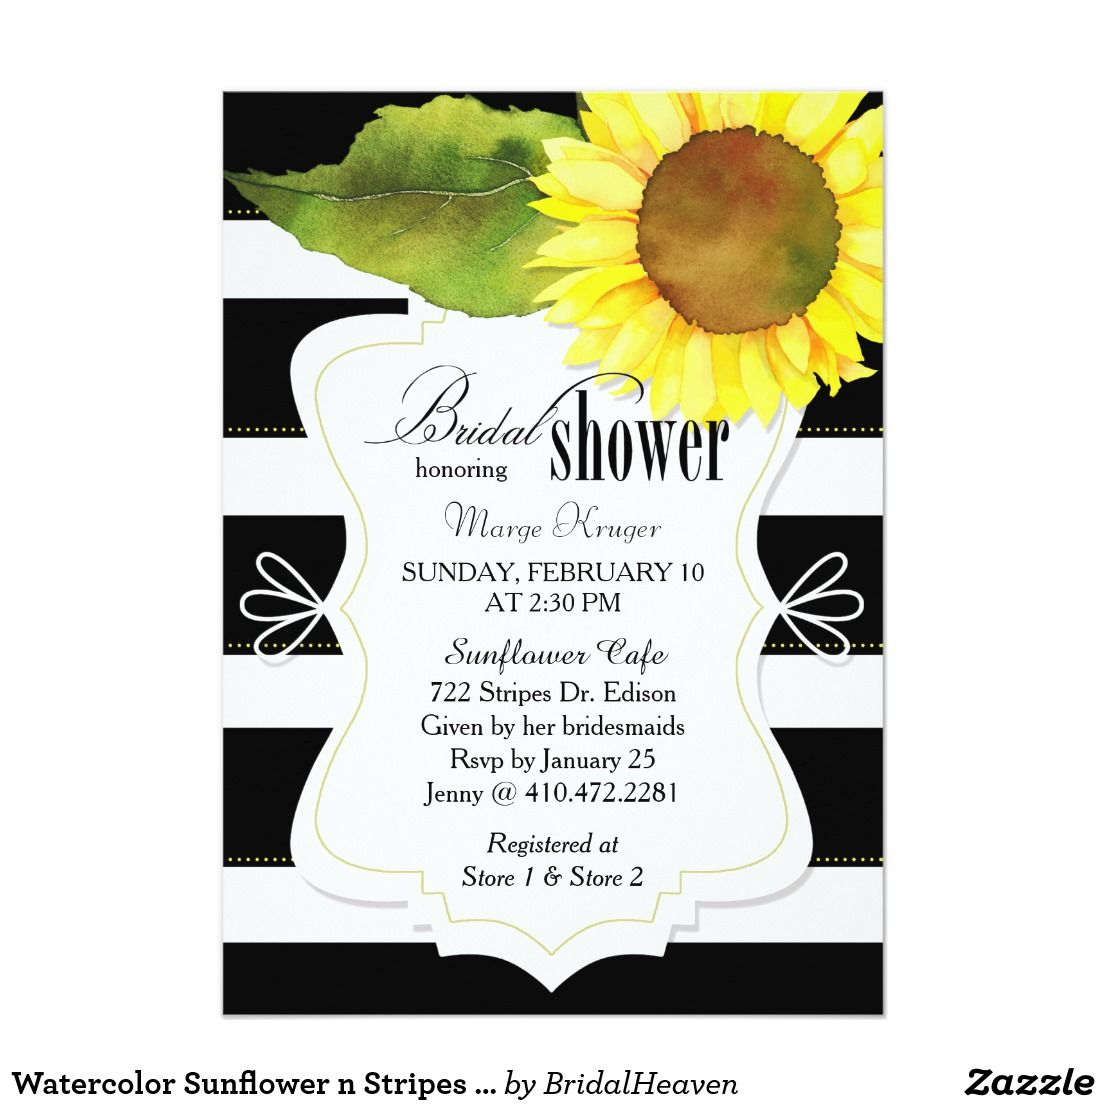 Watercolor Sunflower n Stripes Bridal Shower Card | Watercolor ...